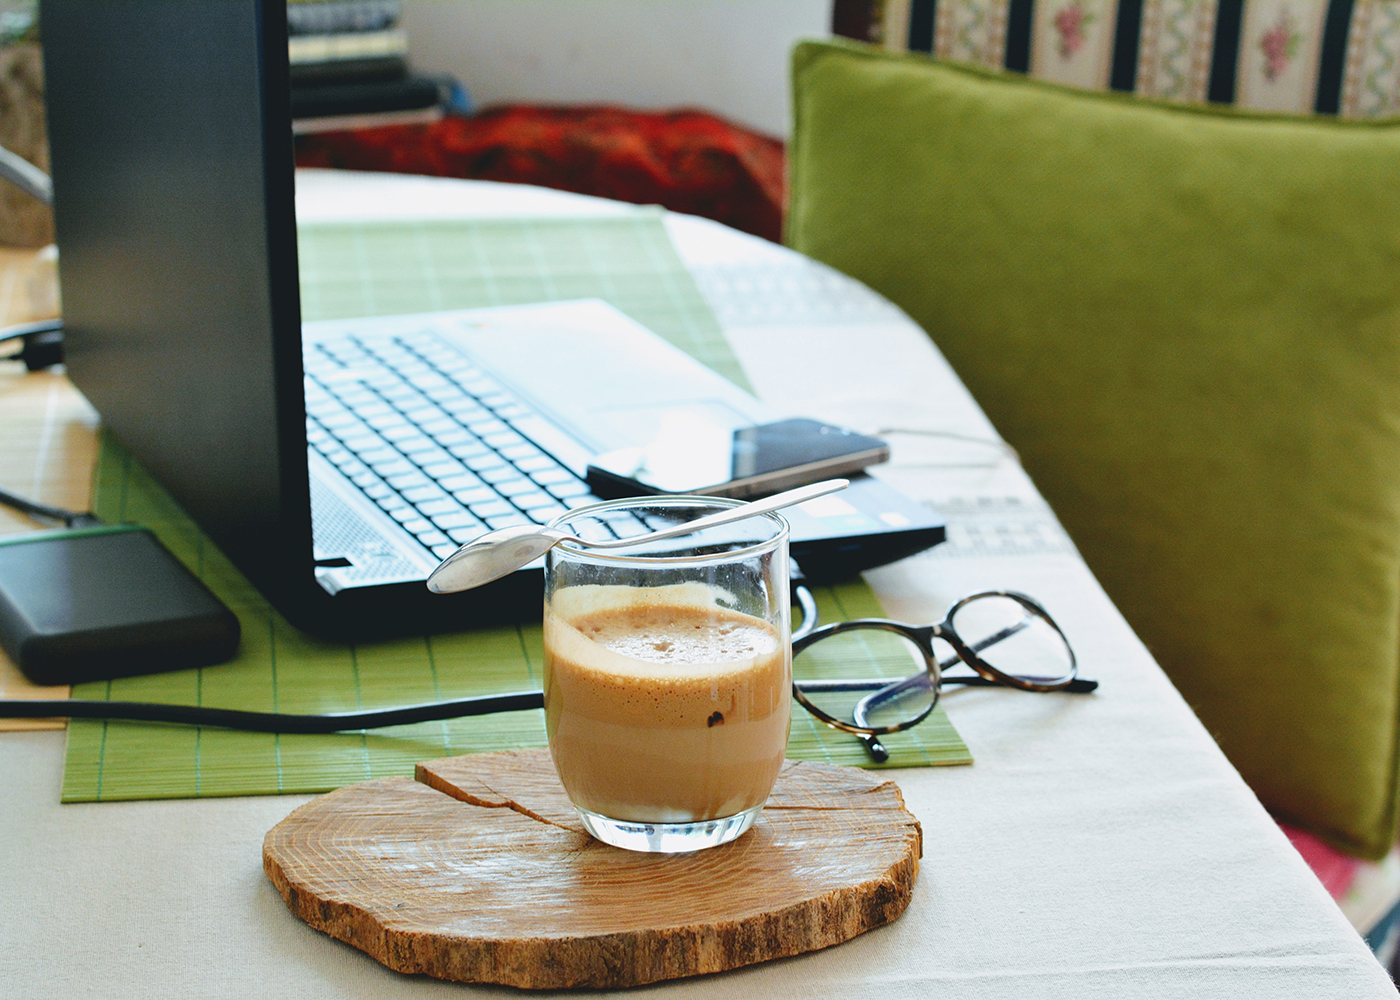 Working Remotely? 7 Tips For Making Your Life Easier Thumbnail